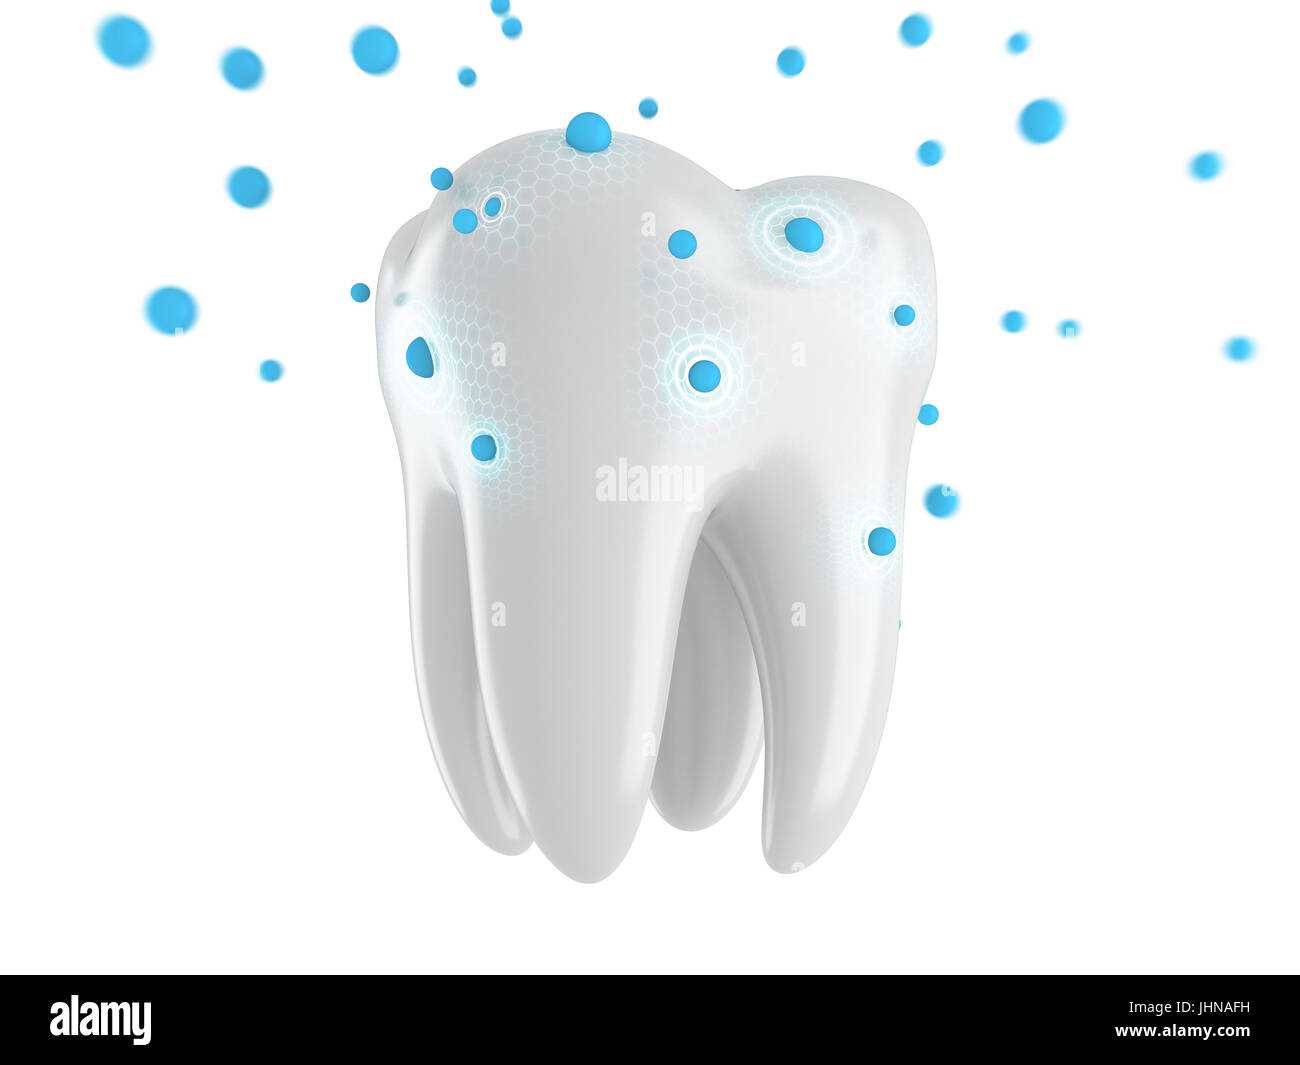 Active reducing pellets of calcium and fluorine. Protection of enamel. Bleaching. SENSITIVE Repair & Whitening. - Stock Image